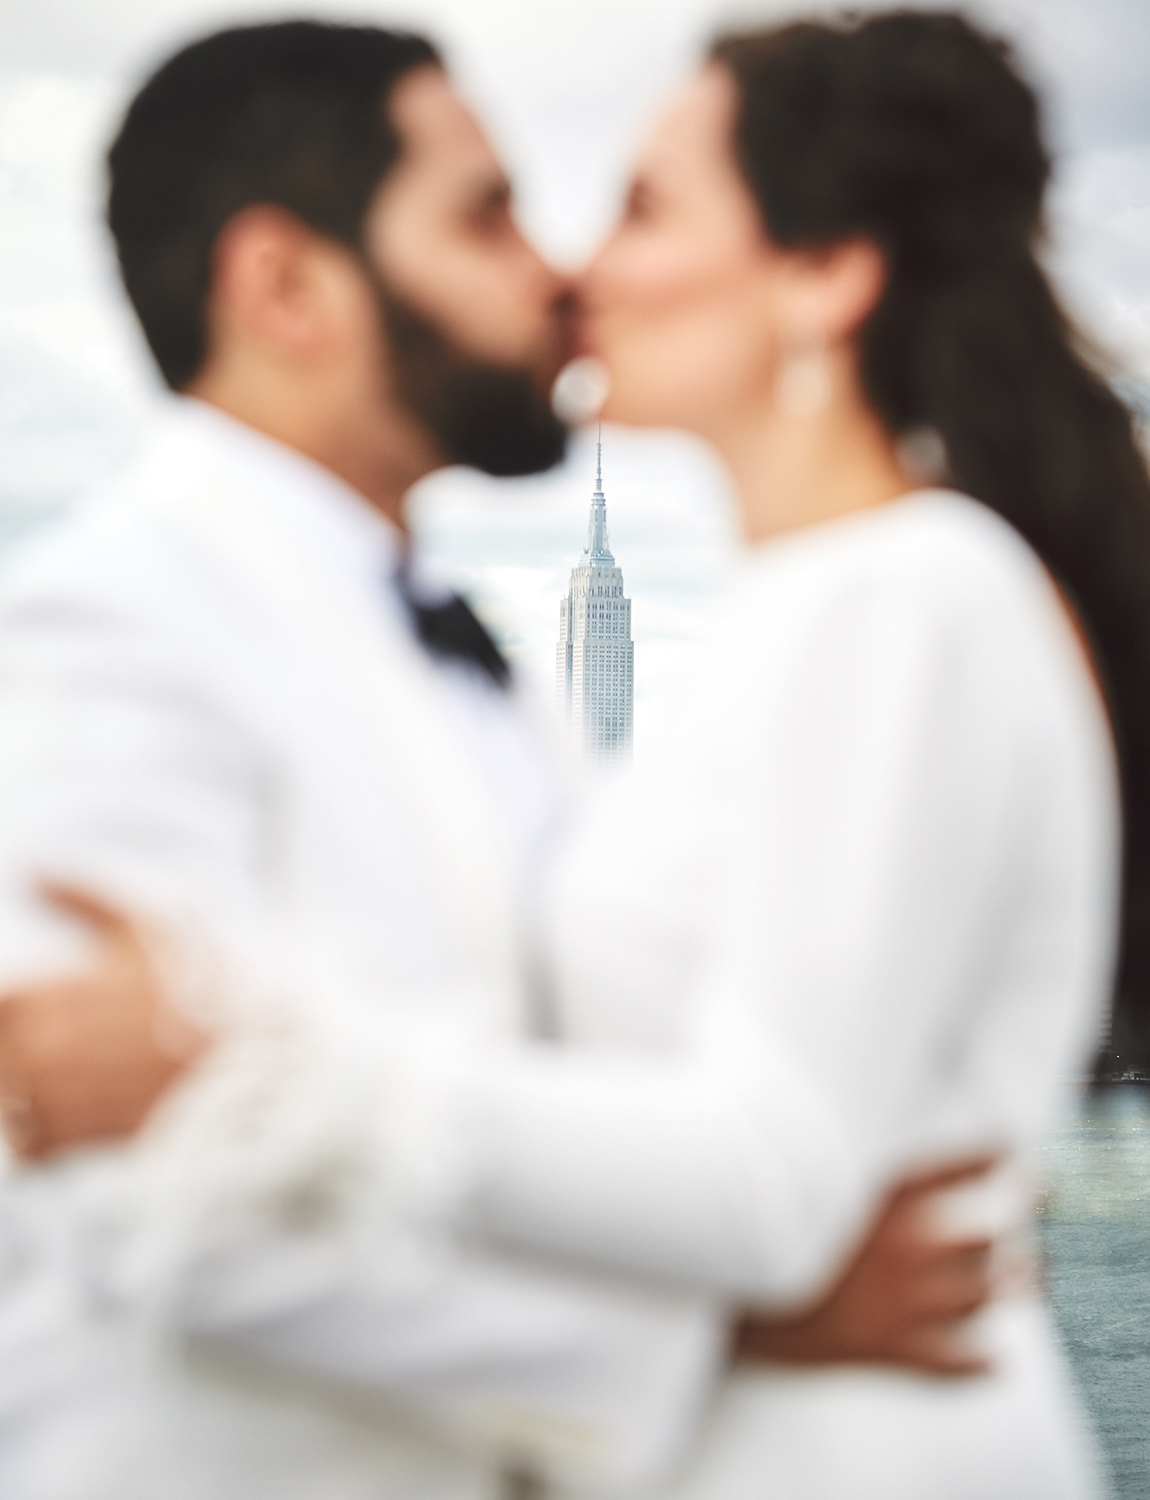 170930_WilliamValeWeddingPhotography_BrooklynWeddingPhotographer_By_BriJohnsonWeddings_0091.jpg